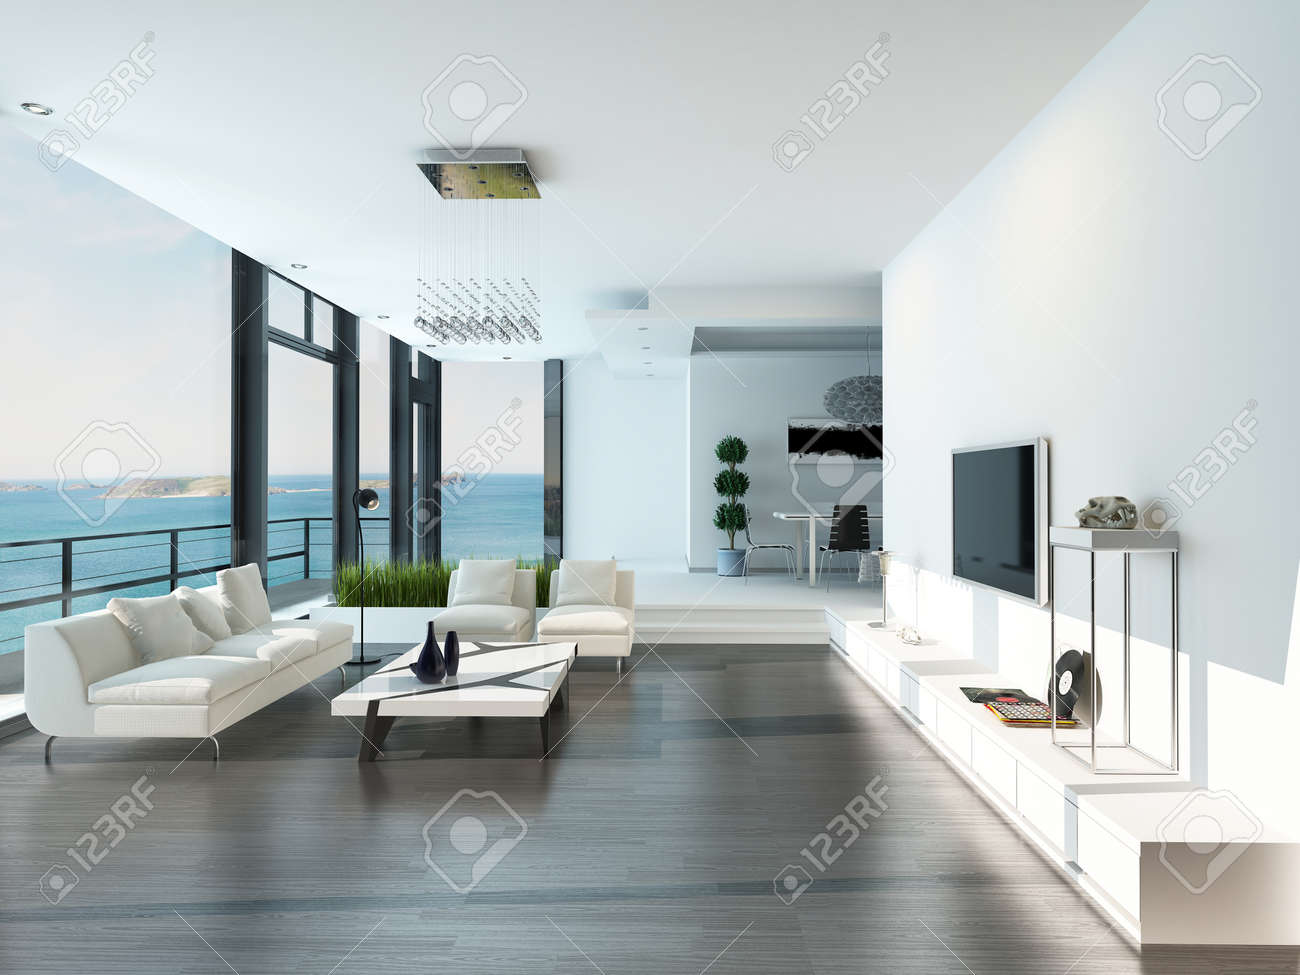 Modern Luxurious Living Room Interior Stock Photo, Picture And ...